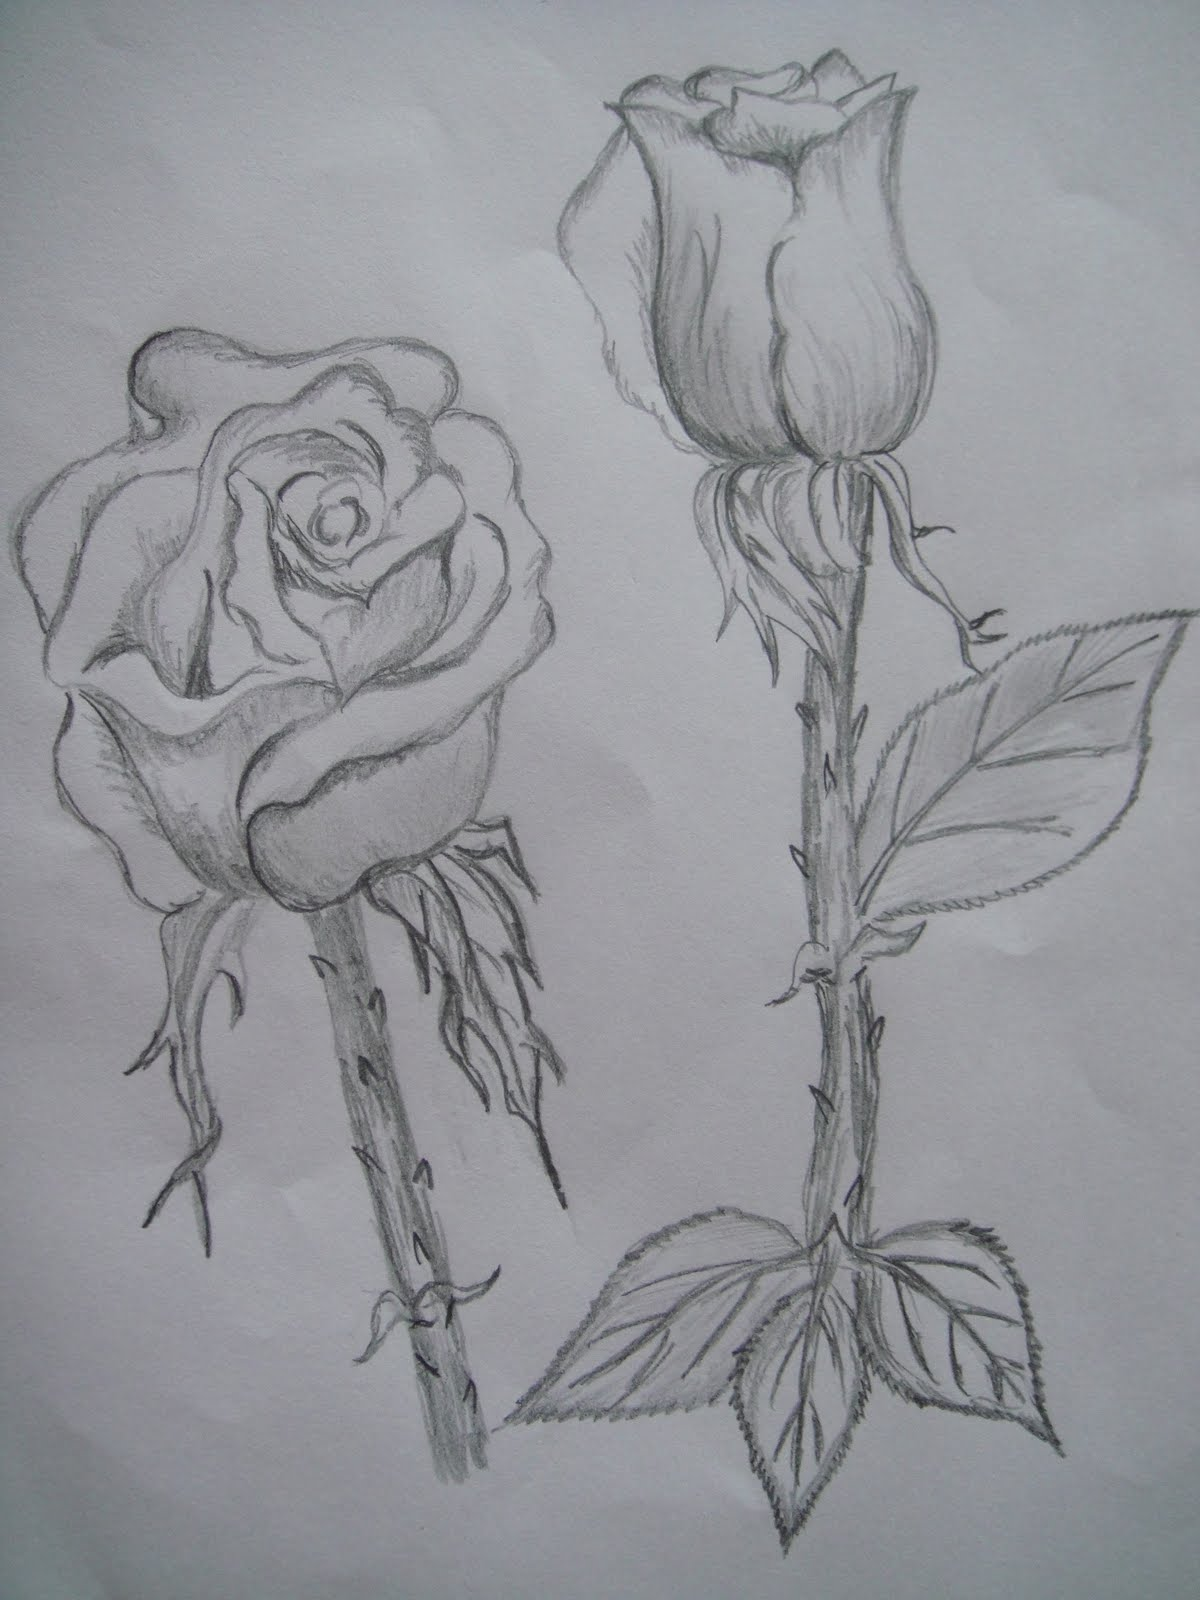 Some pencil sketches